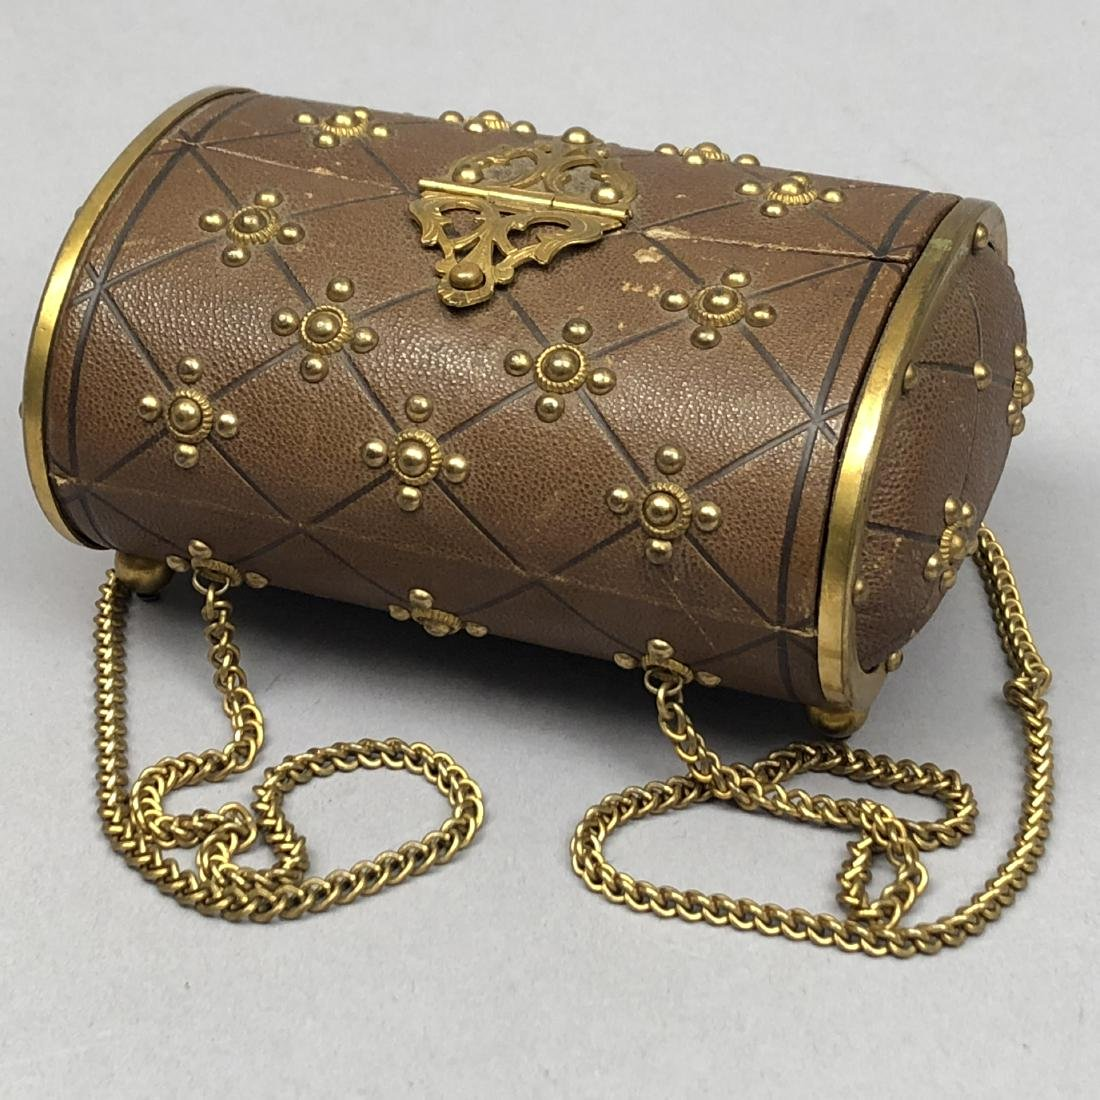 HINGED-LID LEATHER SEWING CASE, 1850 - 1870 - 3